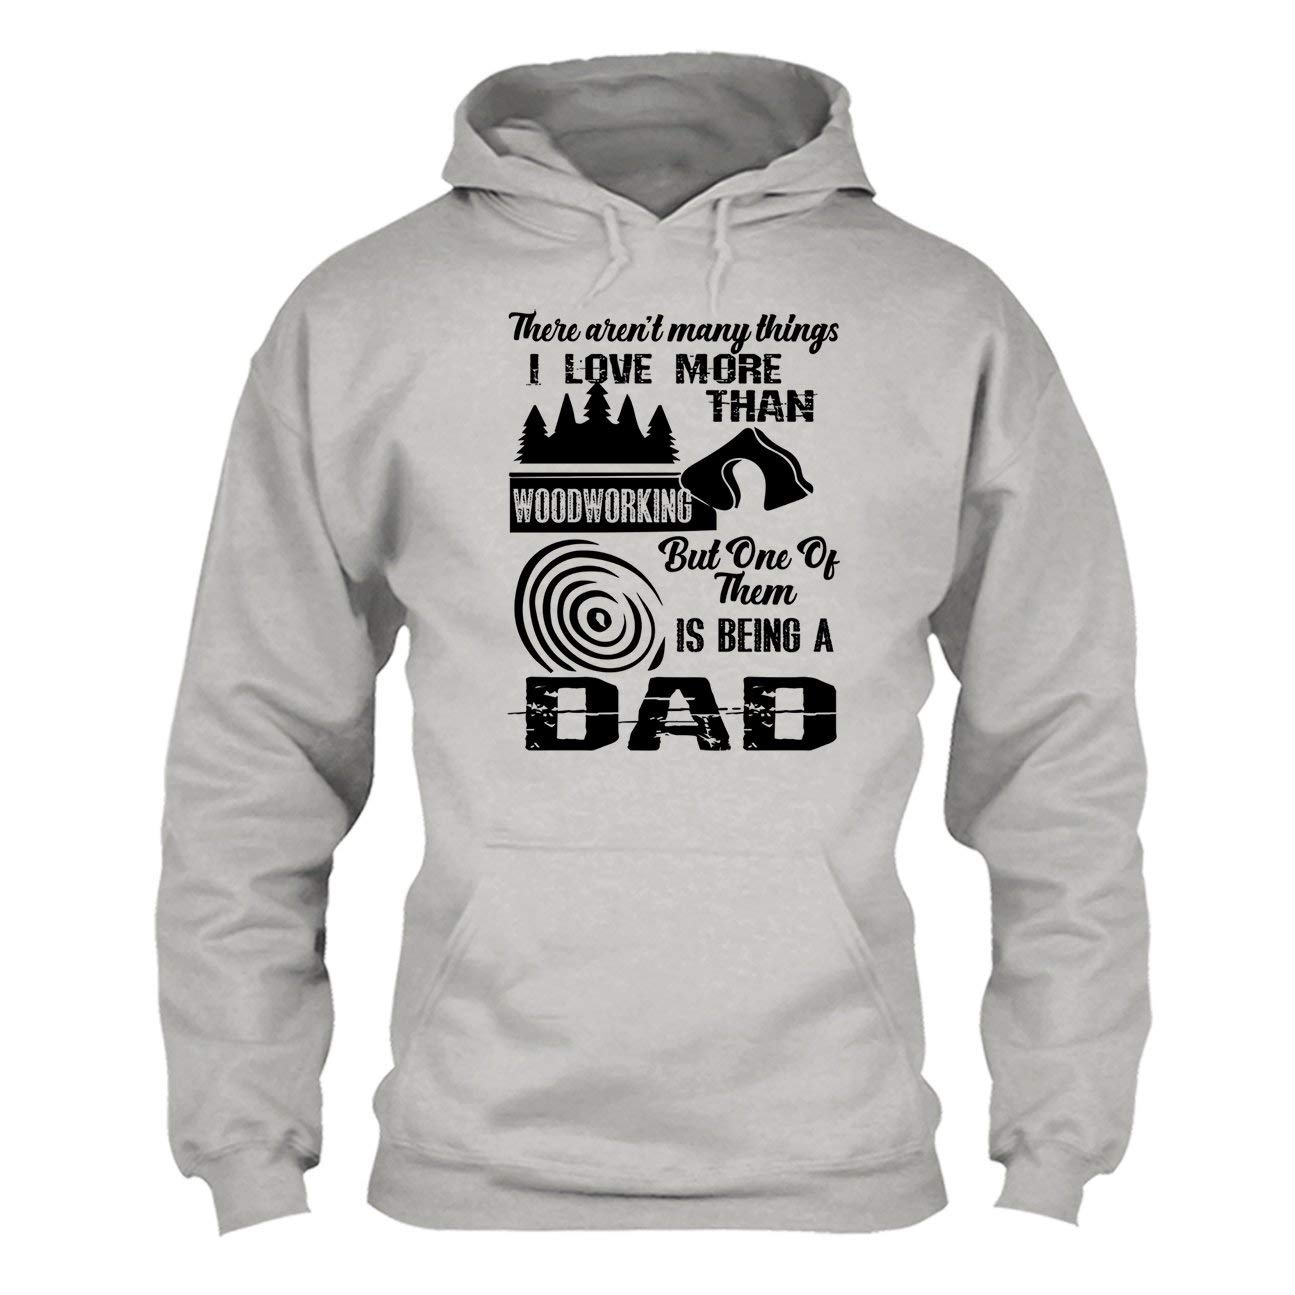 Clothing Tee Shirt Woodworking Dad Shirt